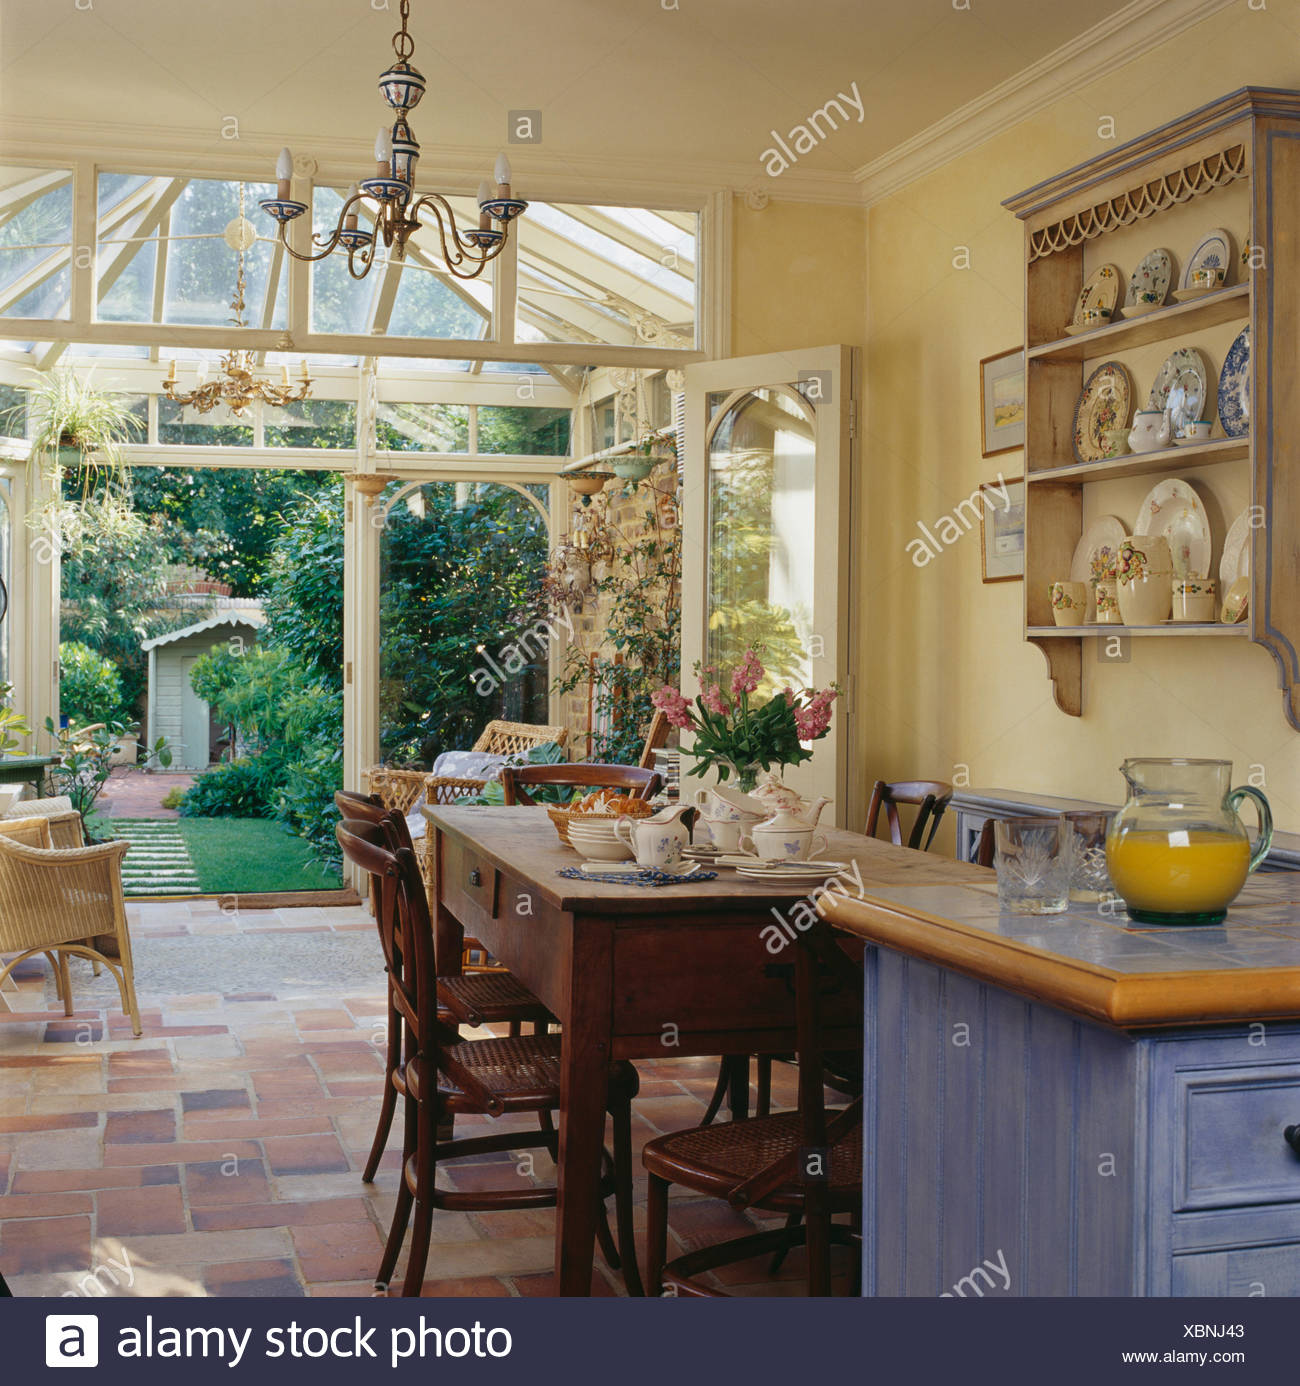 Simple Wooden Table And Chairs In Country Kitchen Dining